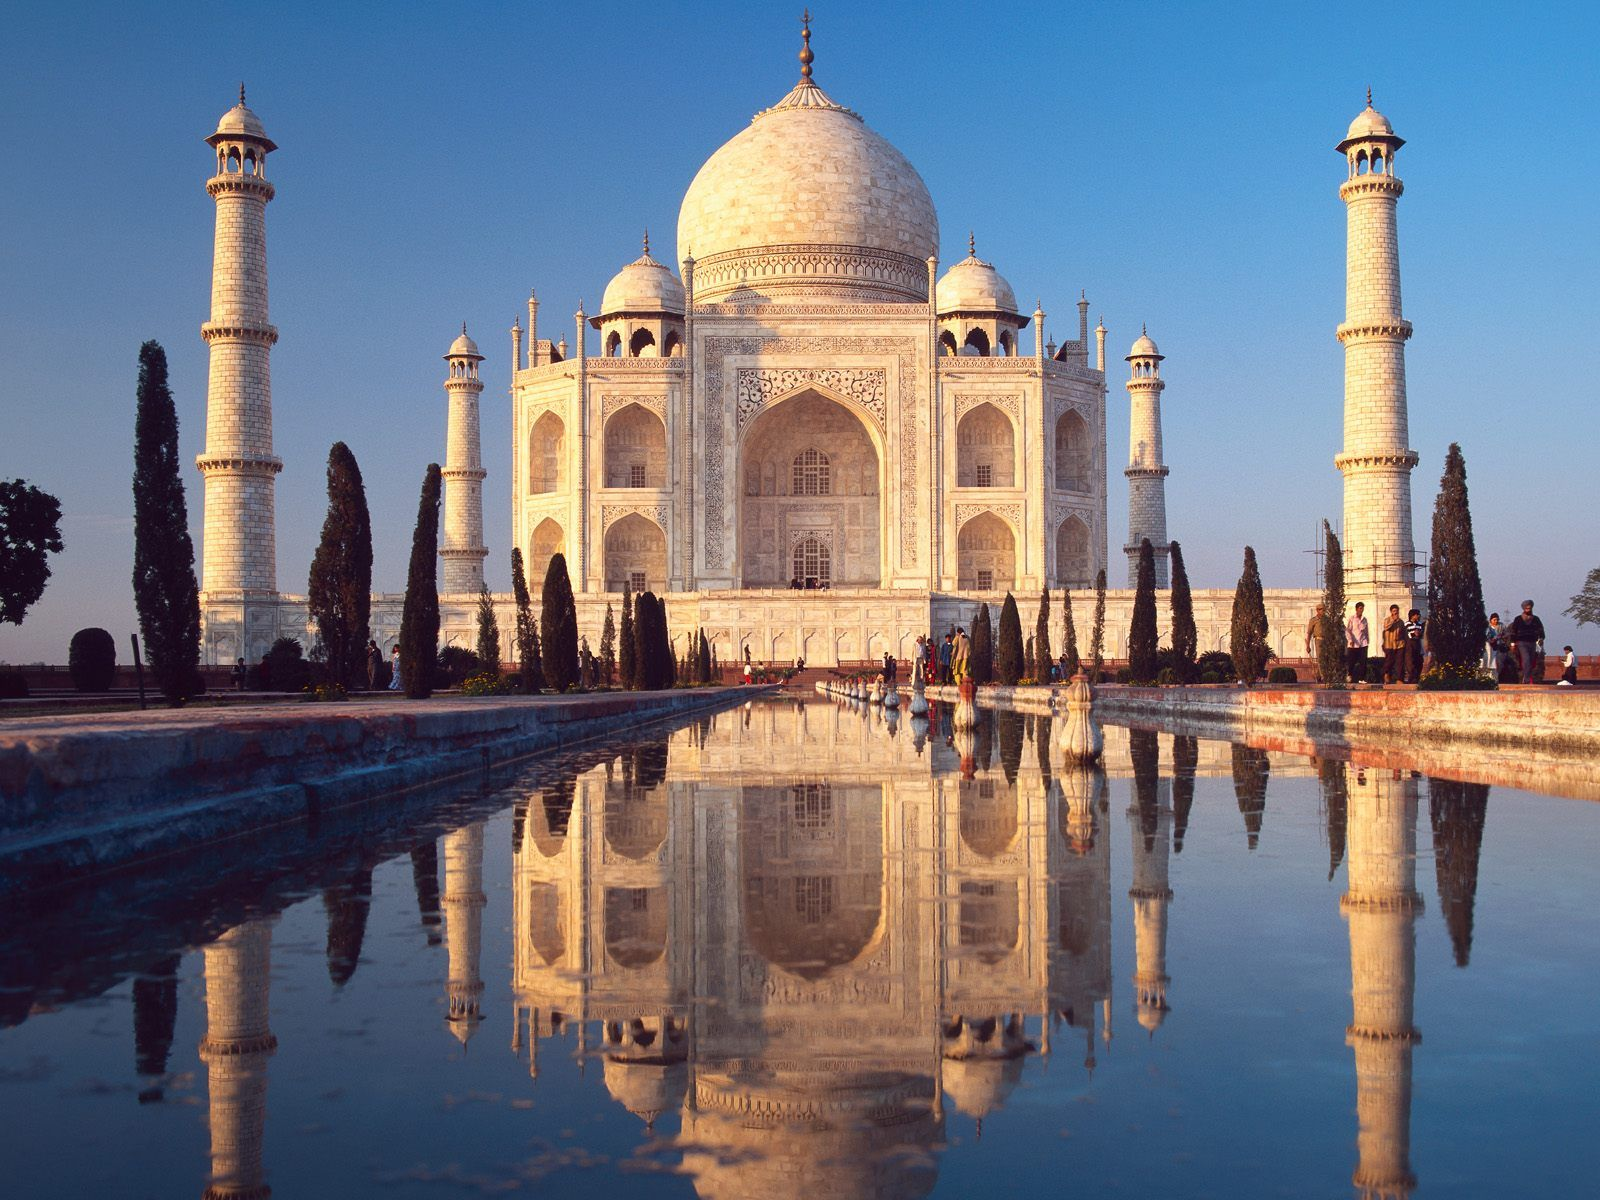 Taj Mahal located in Agra, India. So beautiful! A white marble mausoleum that combines the styles of Turkish, Persian and Indian architecture.